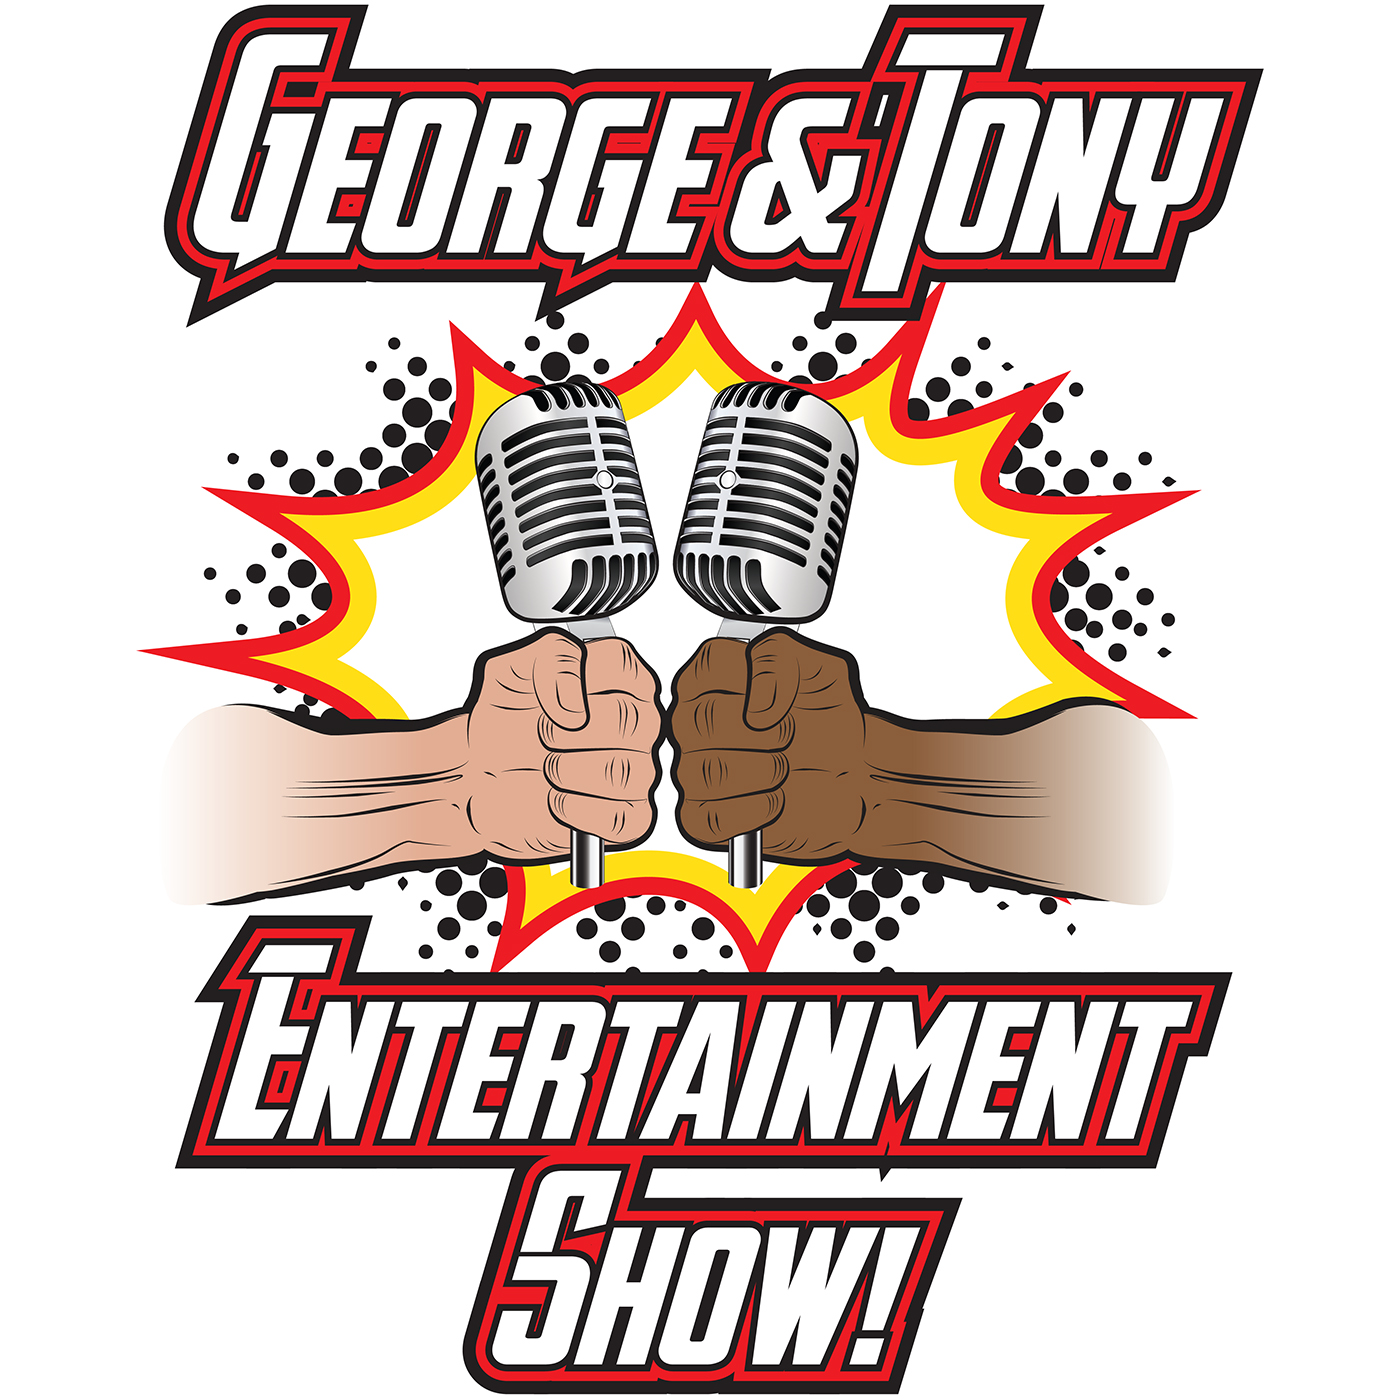 George and Tony Entertainment Show #78